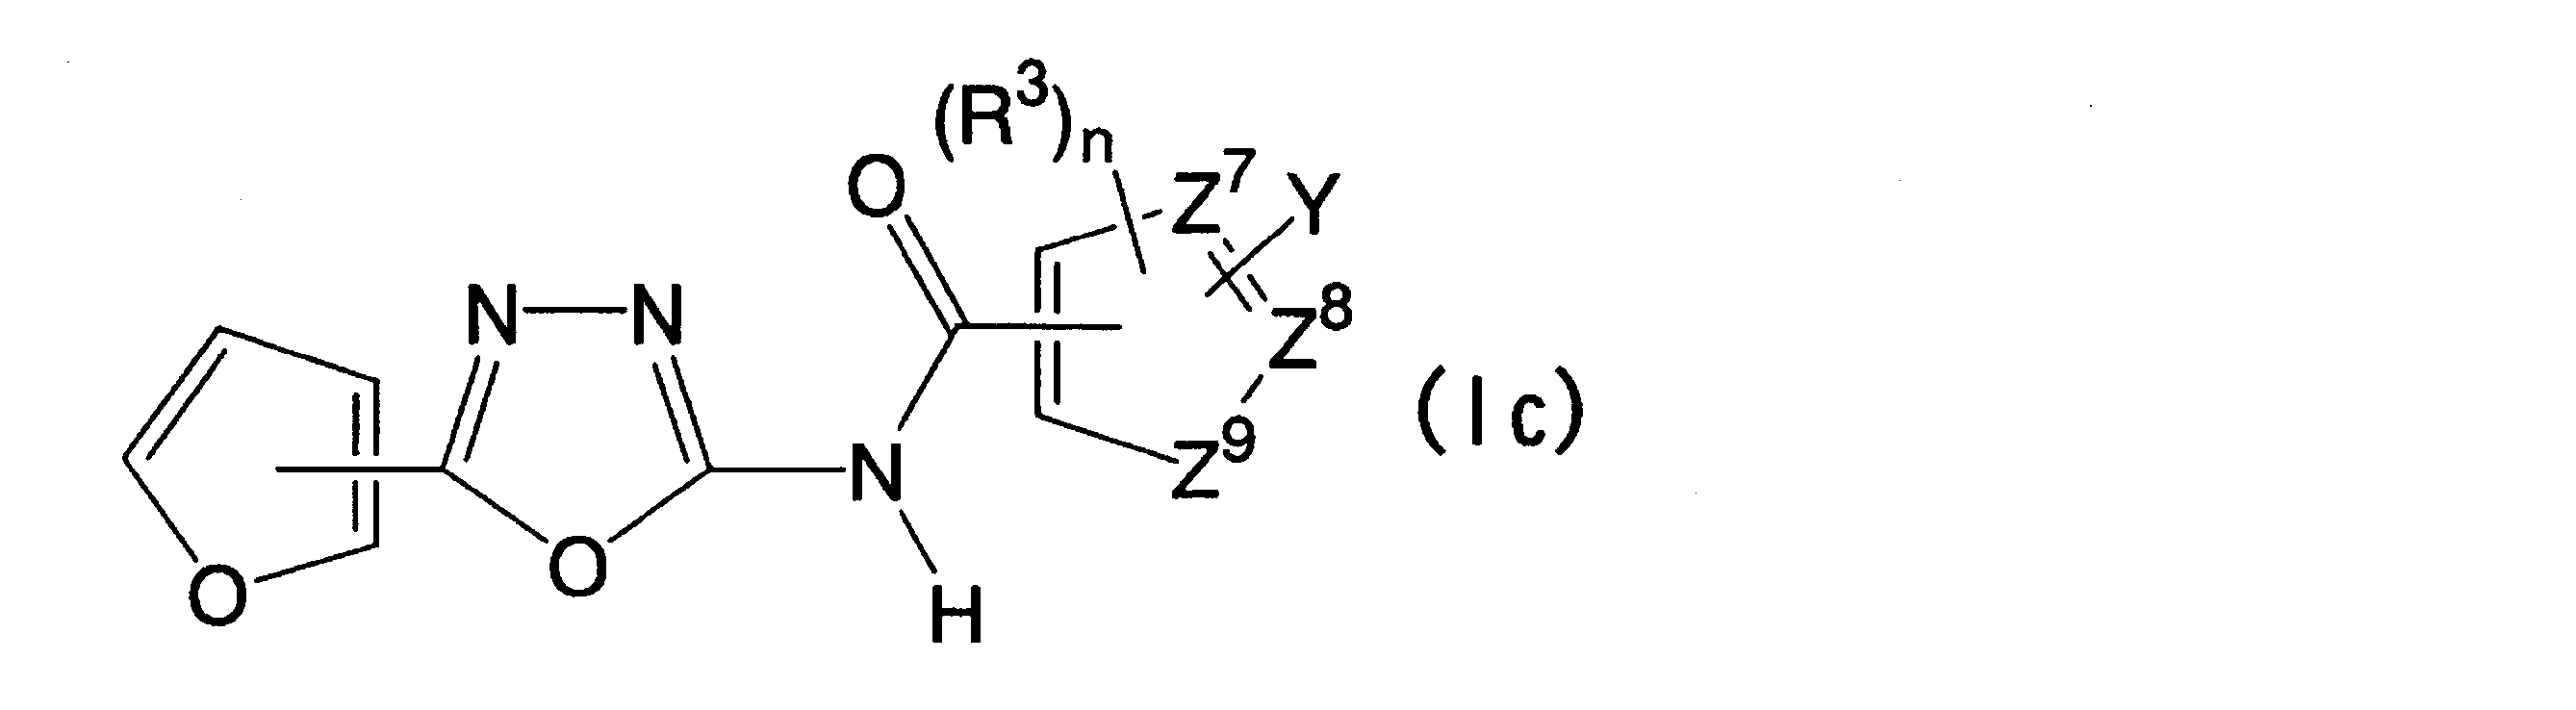 Patents                                                                                                                         Generate link with comments                           1,3,4-oxadiazole-2-carboxamide compound